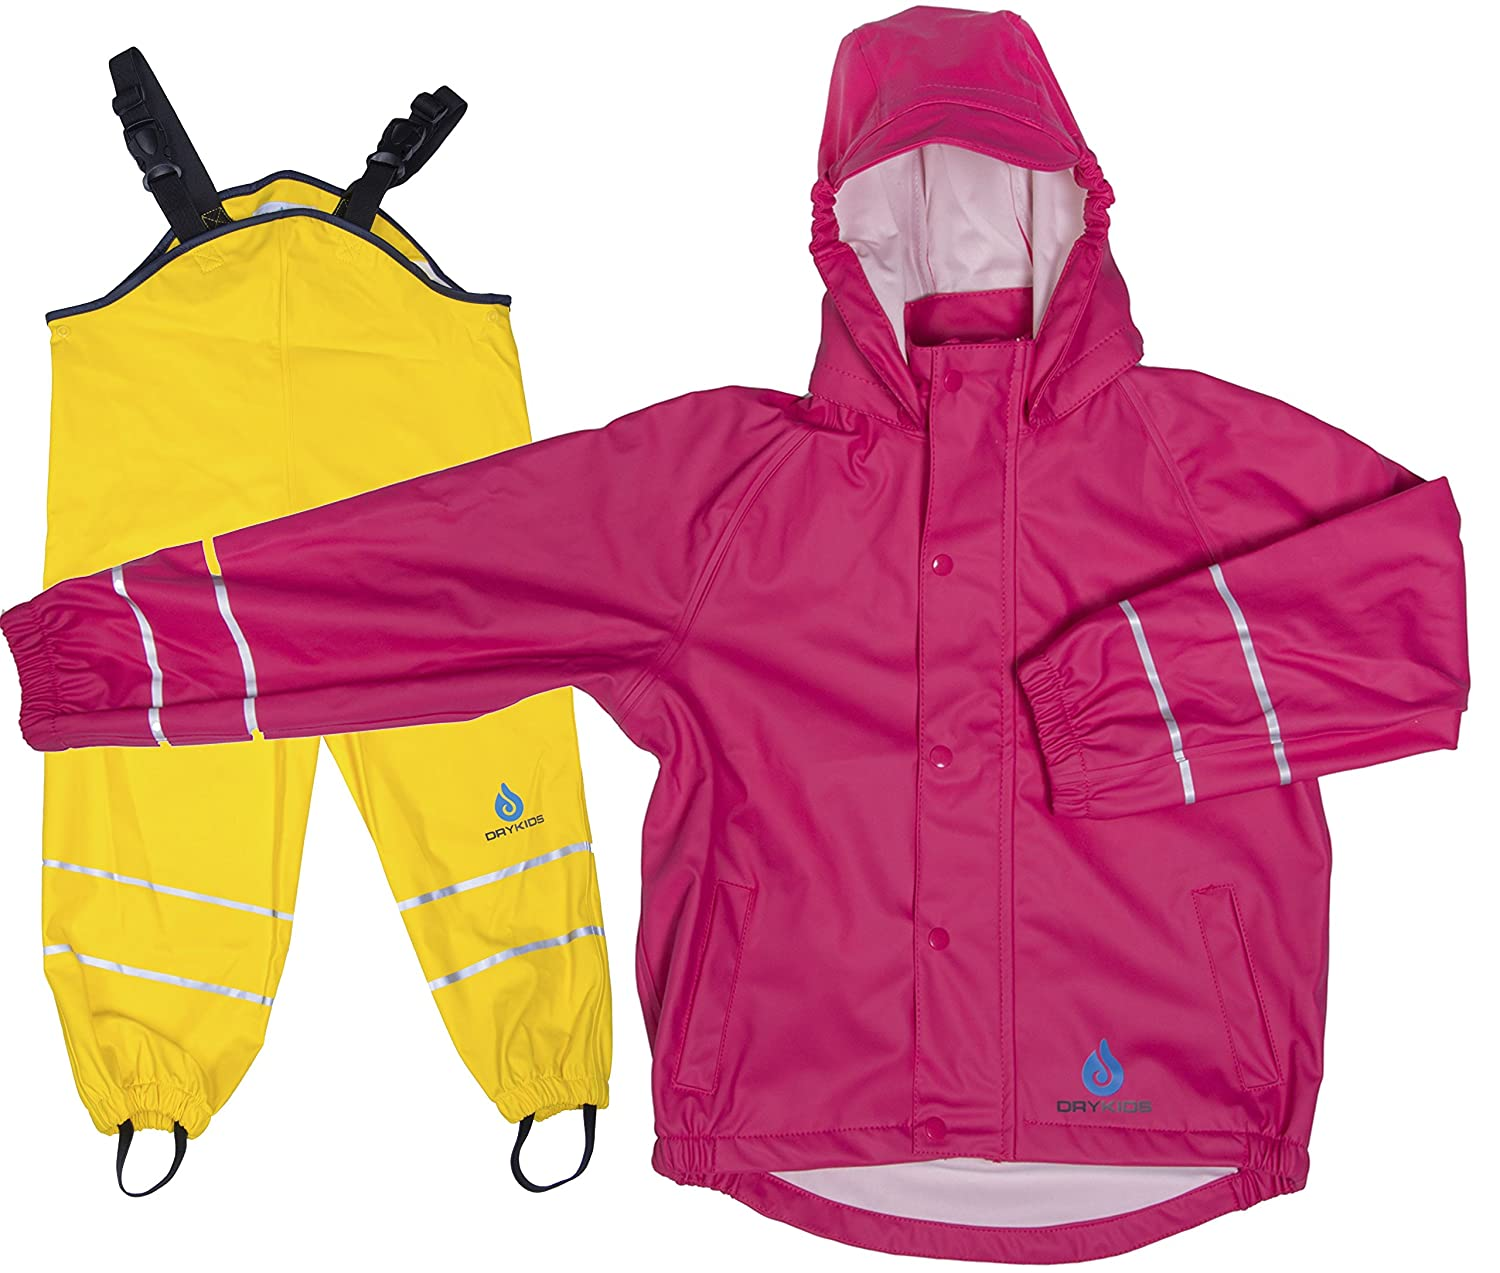 DRY KIDS PU Coated All in One Rainsuit for Boys and Girls